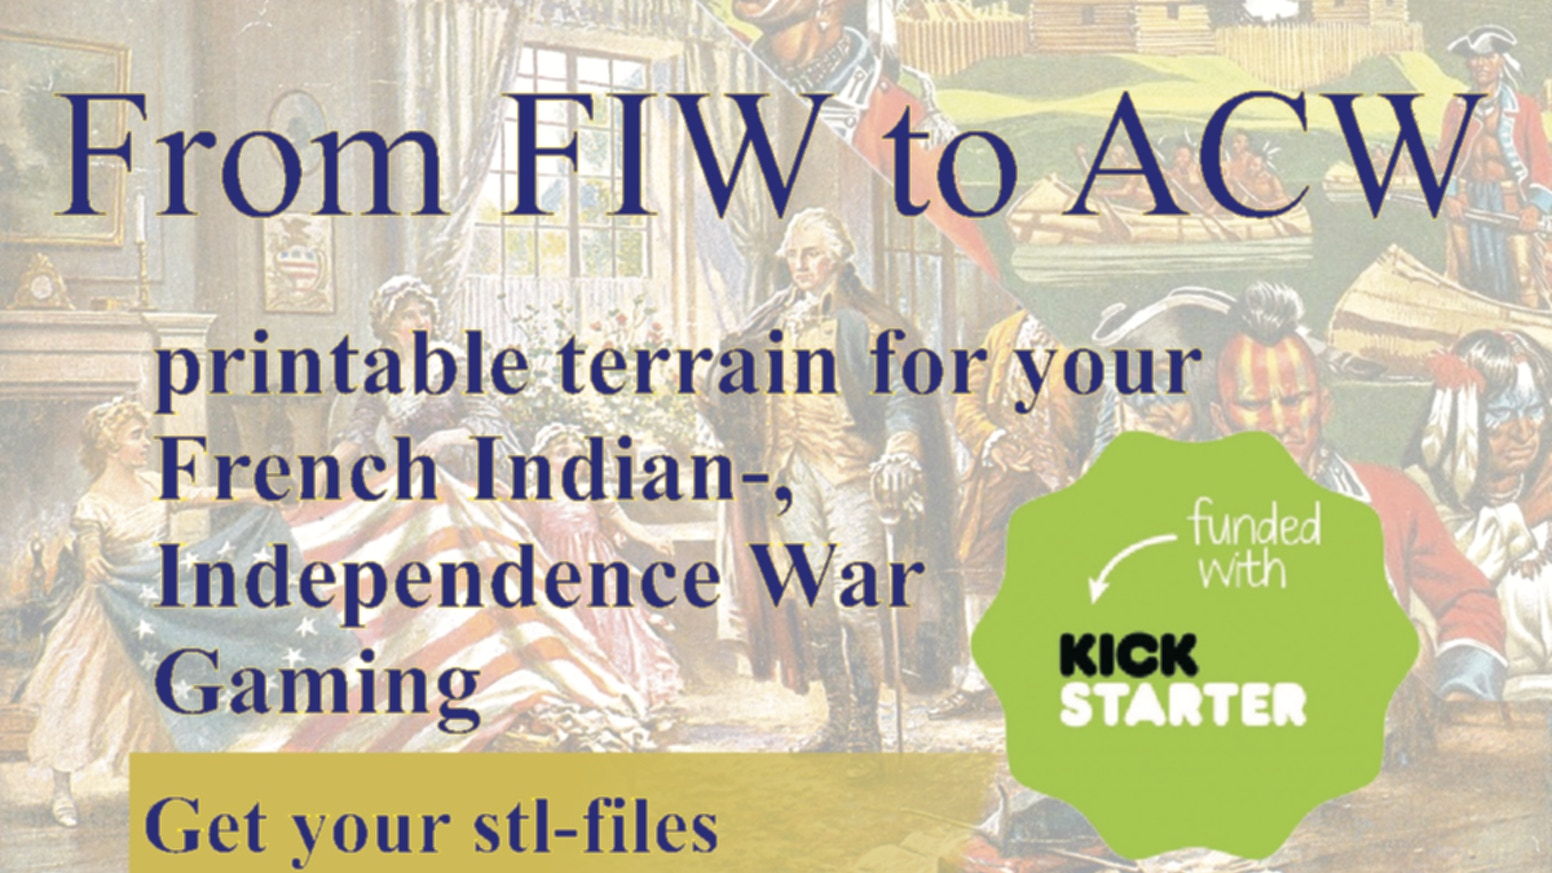 Printable Terrain from French Indian War to American War of Independence - Tabletop Wargaming